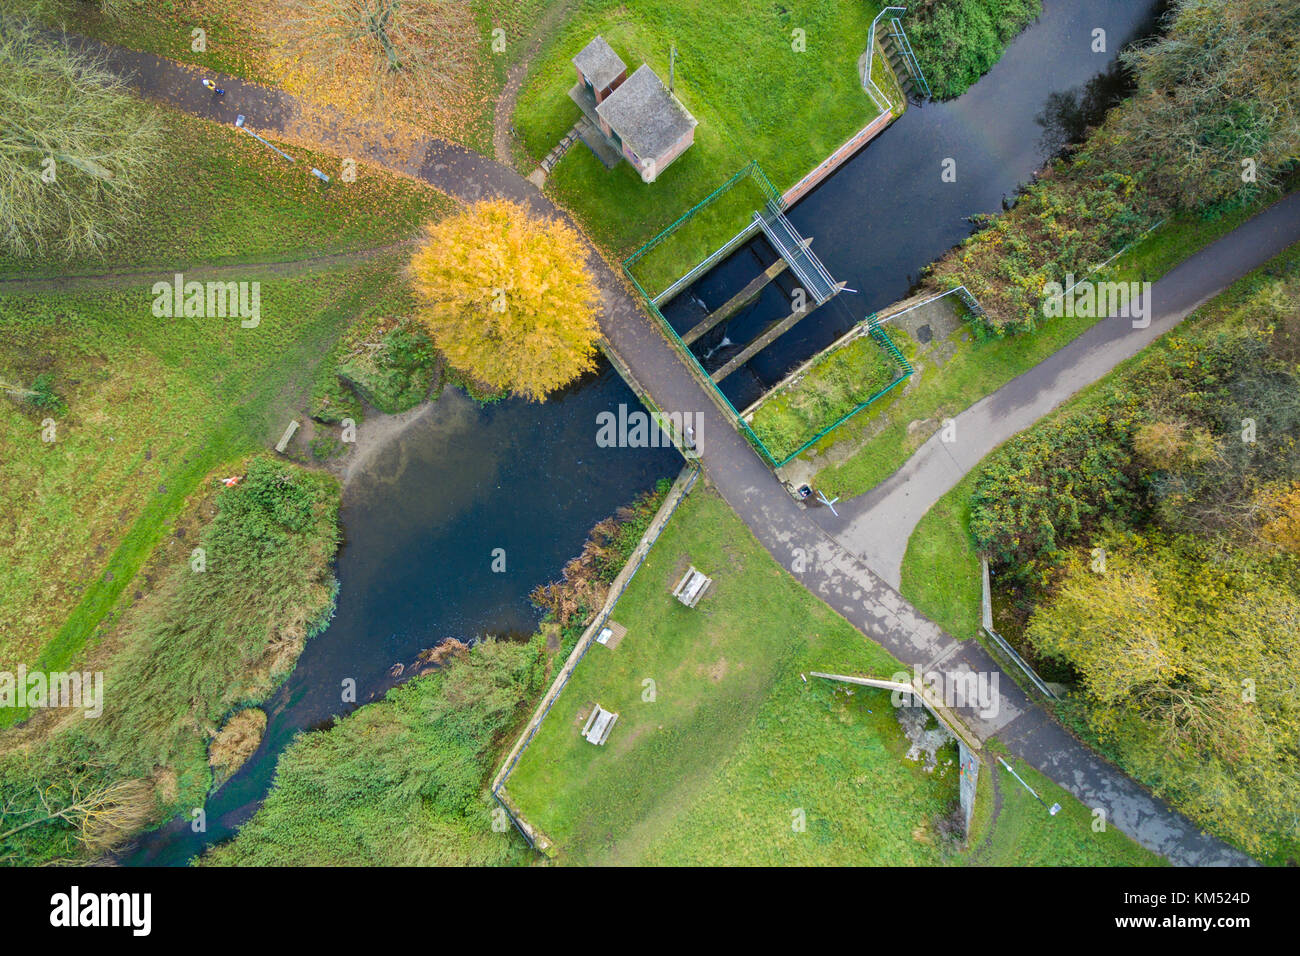 Aerial view of sluice gate in a park - Stock Image